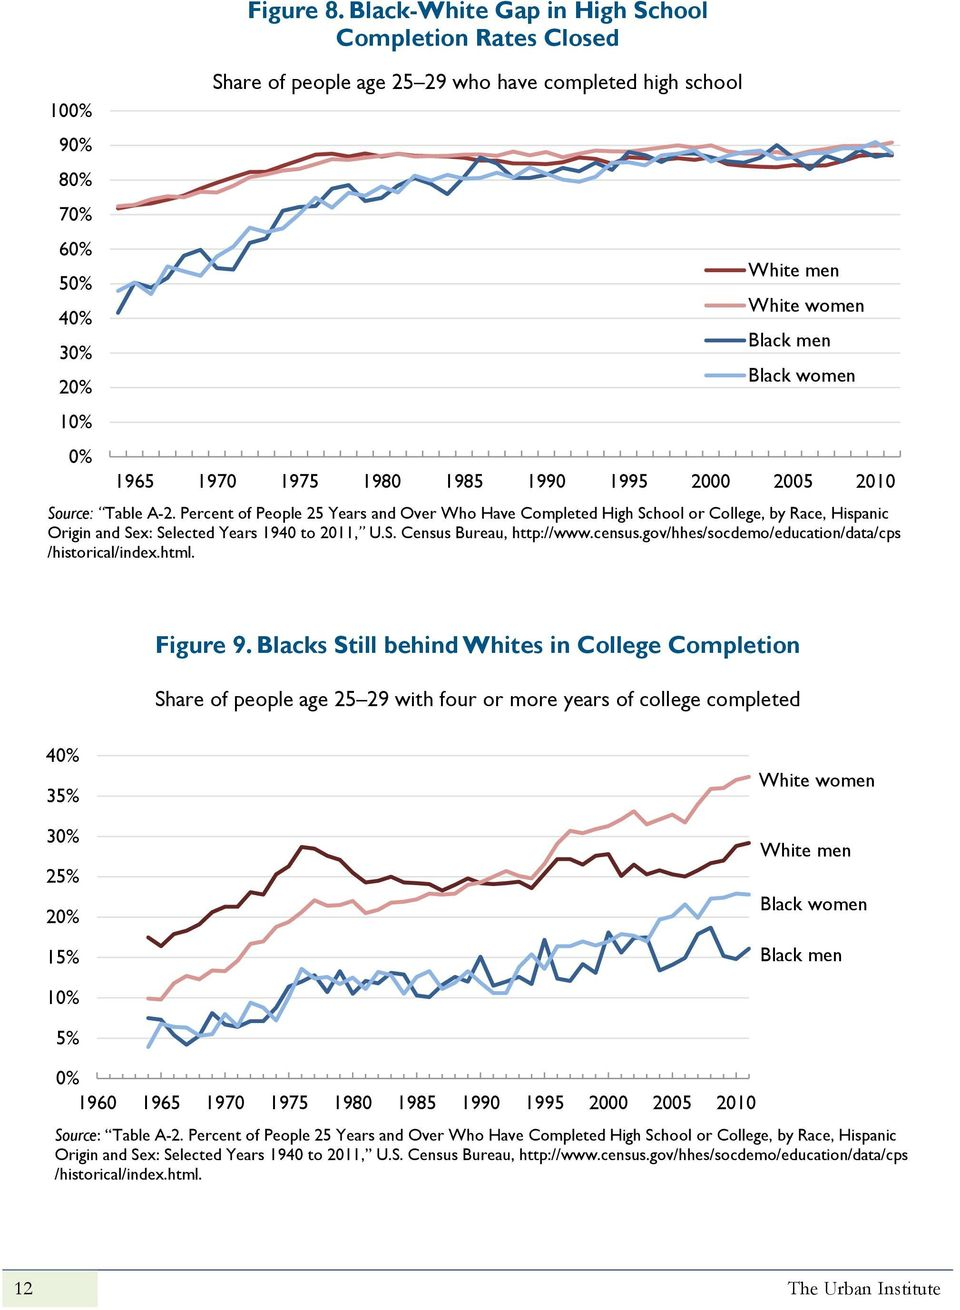 2005 2010 Source: Table A-2. Percent of People 25 Years and Over Who Have Completed High School or College, by Race, Hispanic Origin and Sex: Selected Years 1940 to 2011, U.S. Census Bureau, http://www.